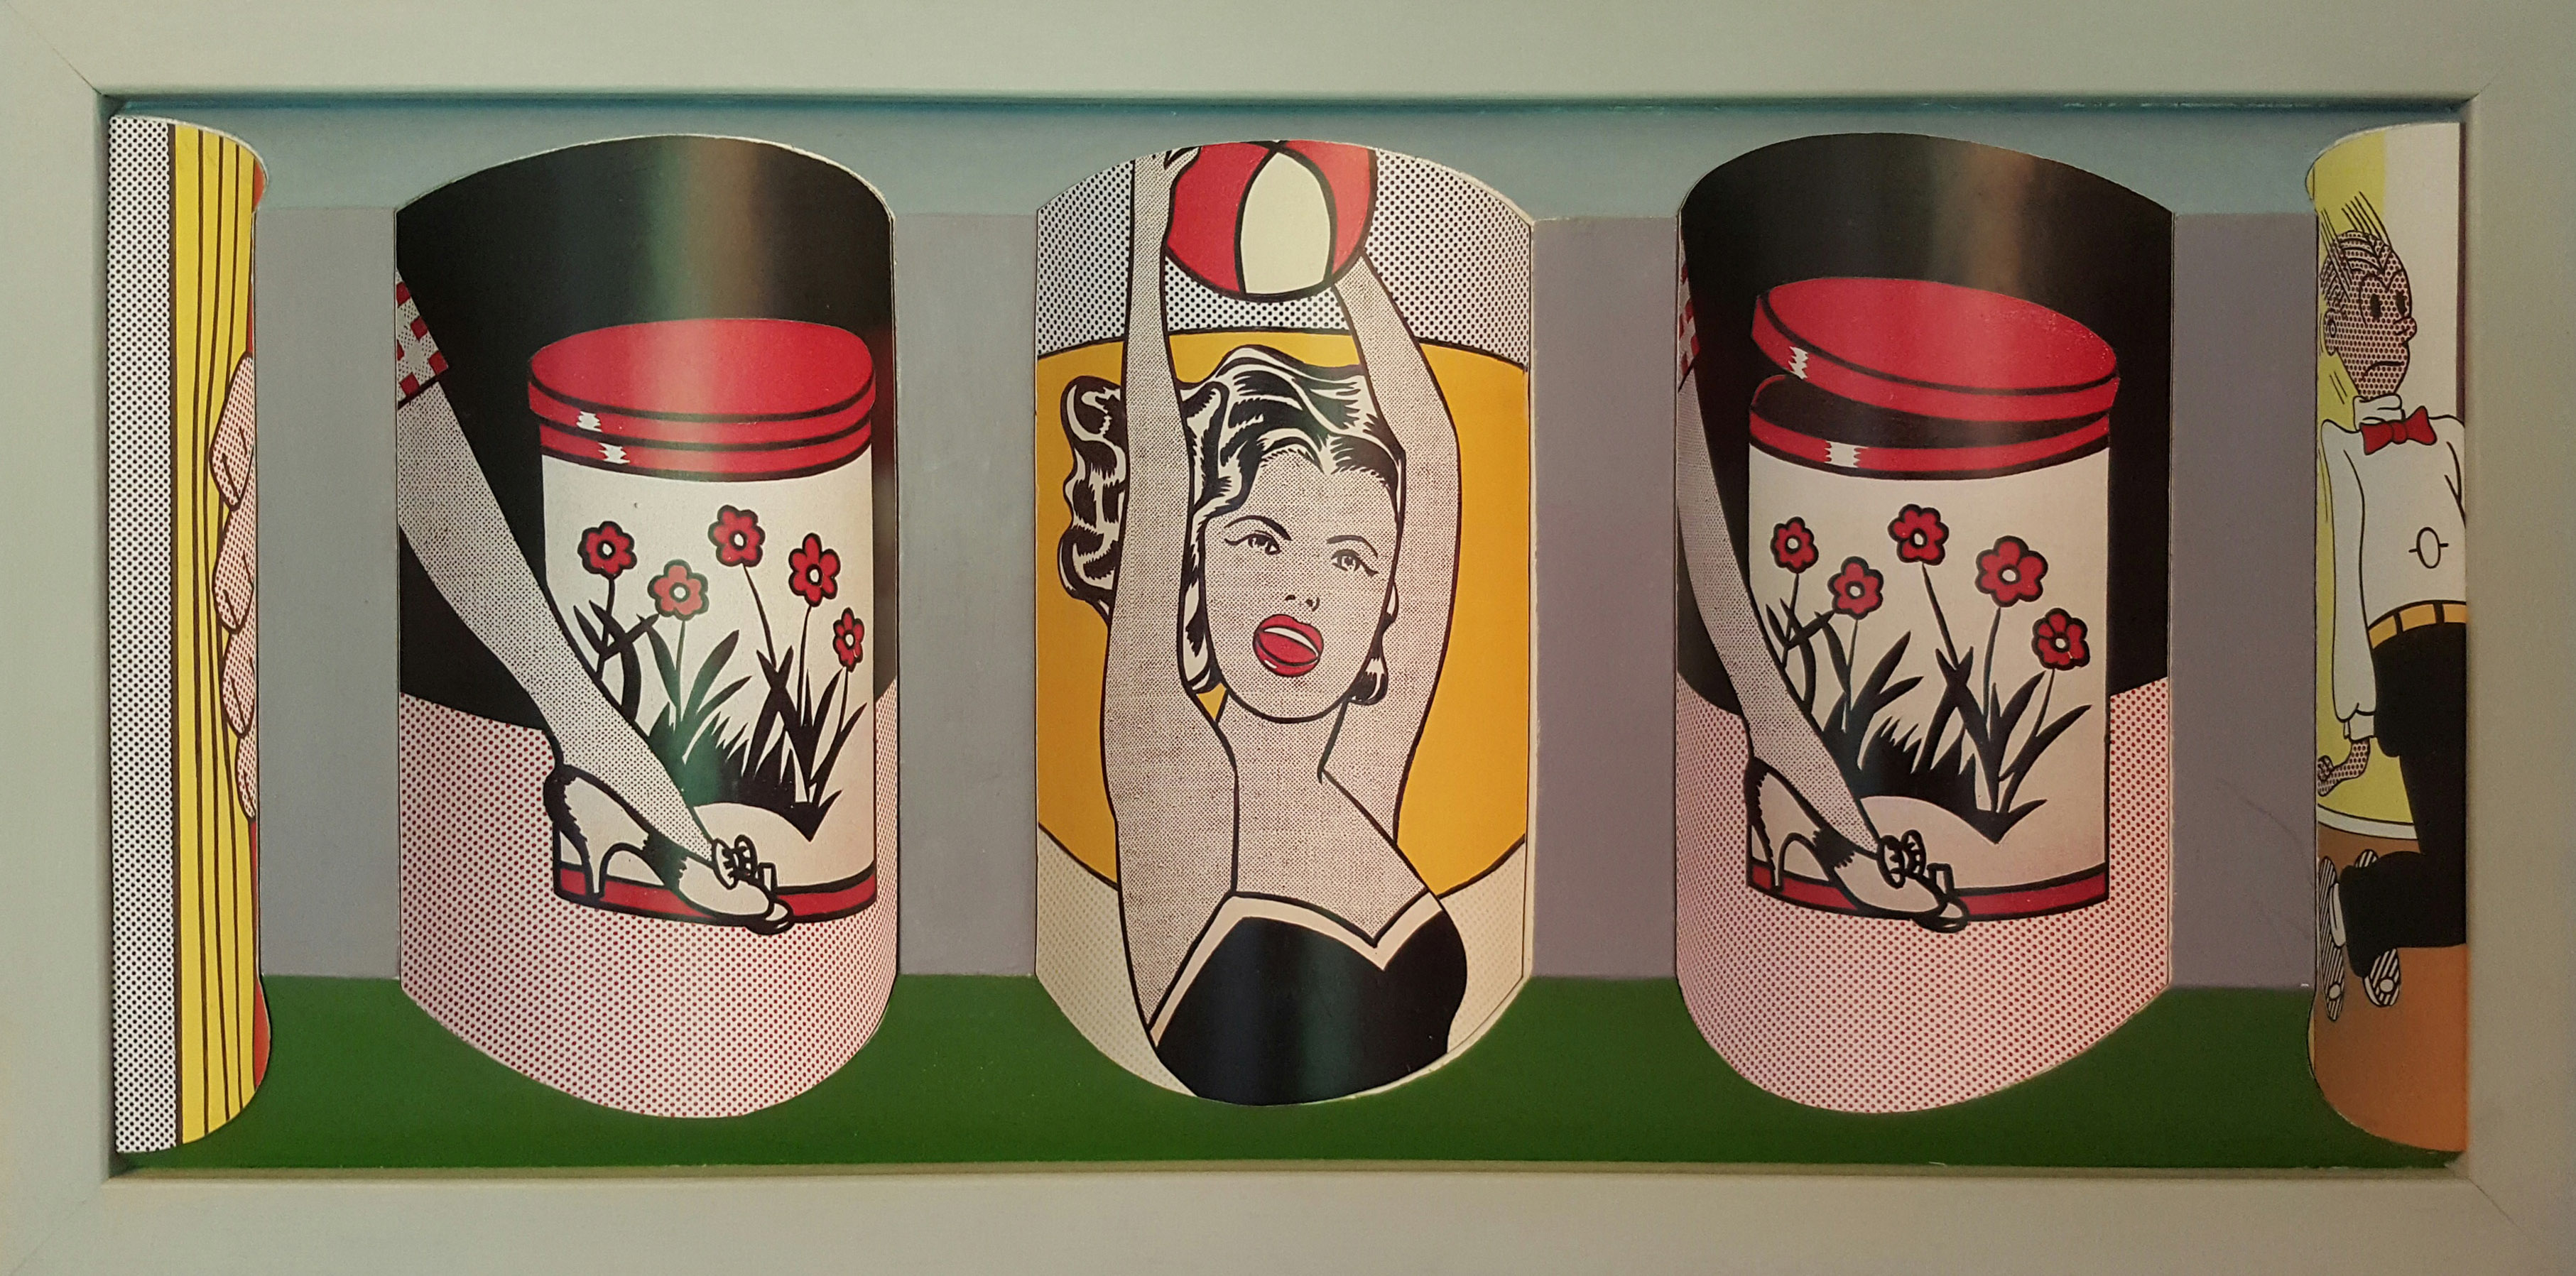 Homage to Roy Lichenstein reverse perspective art